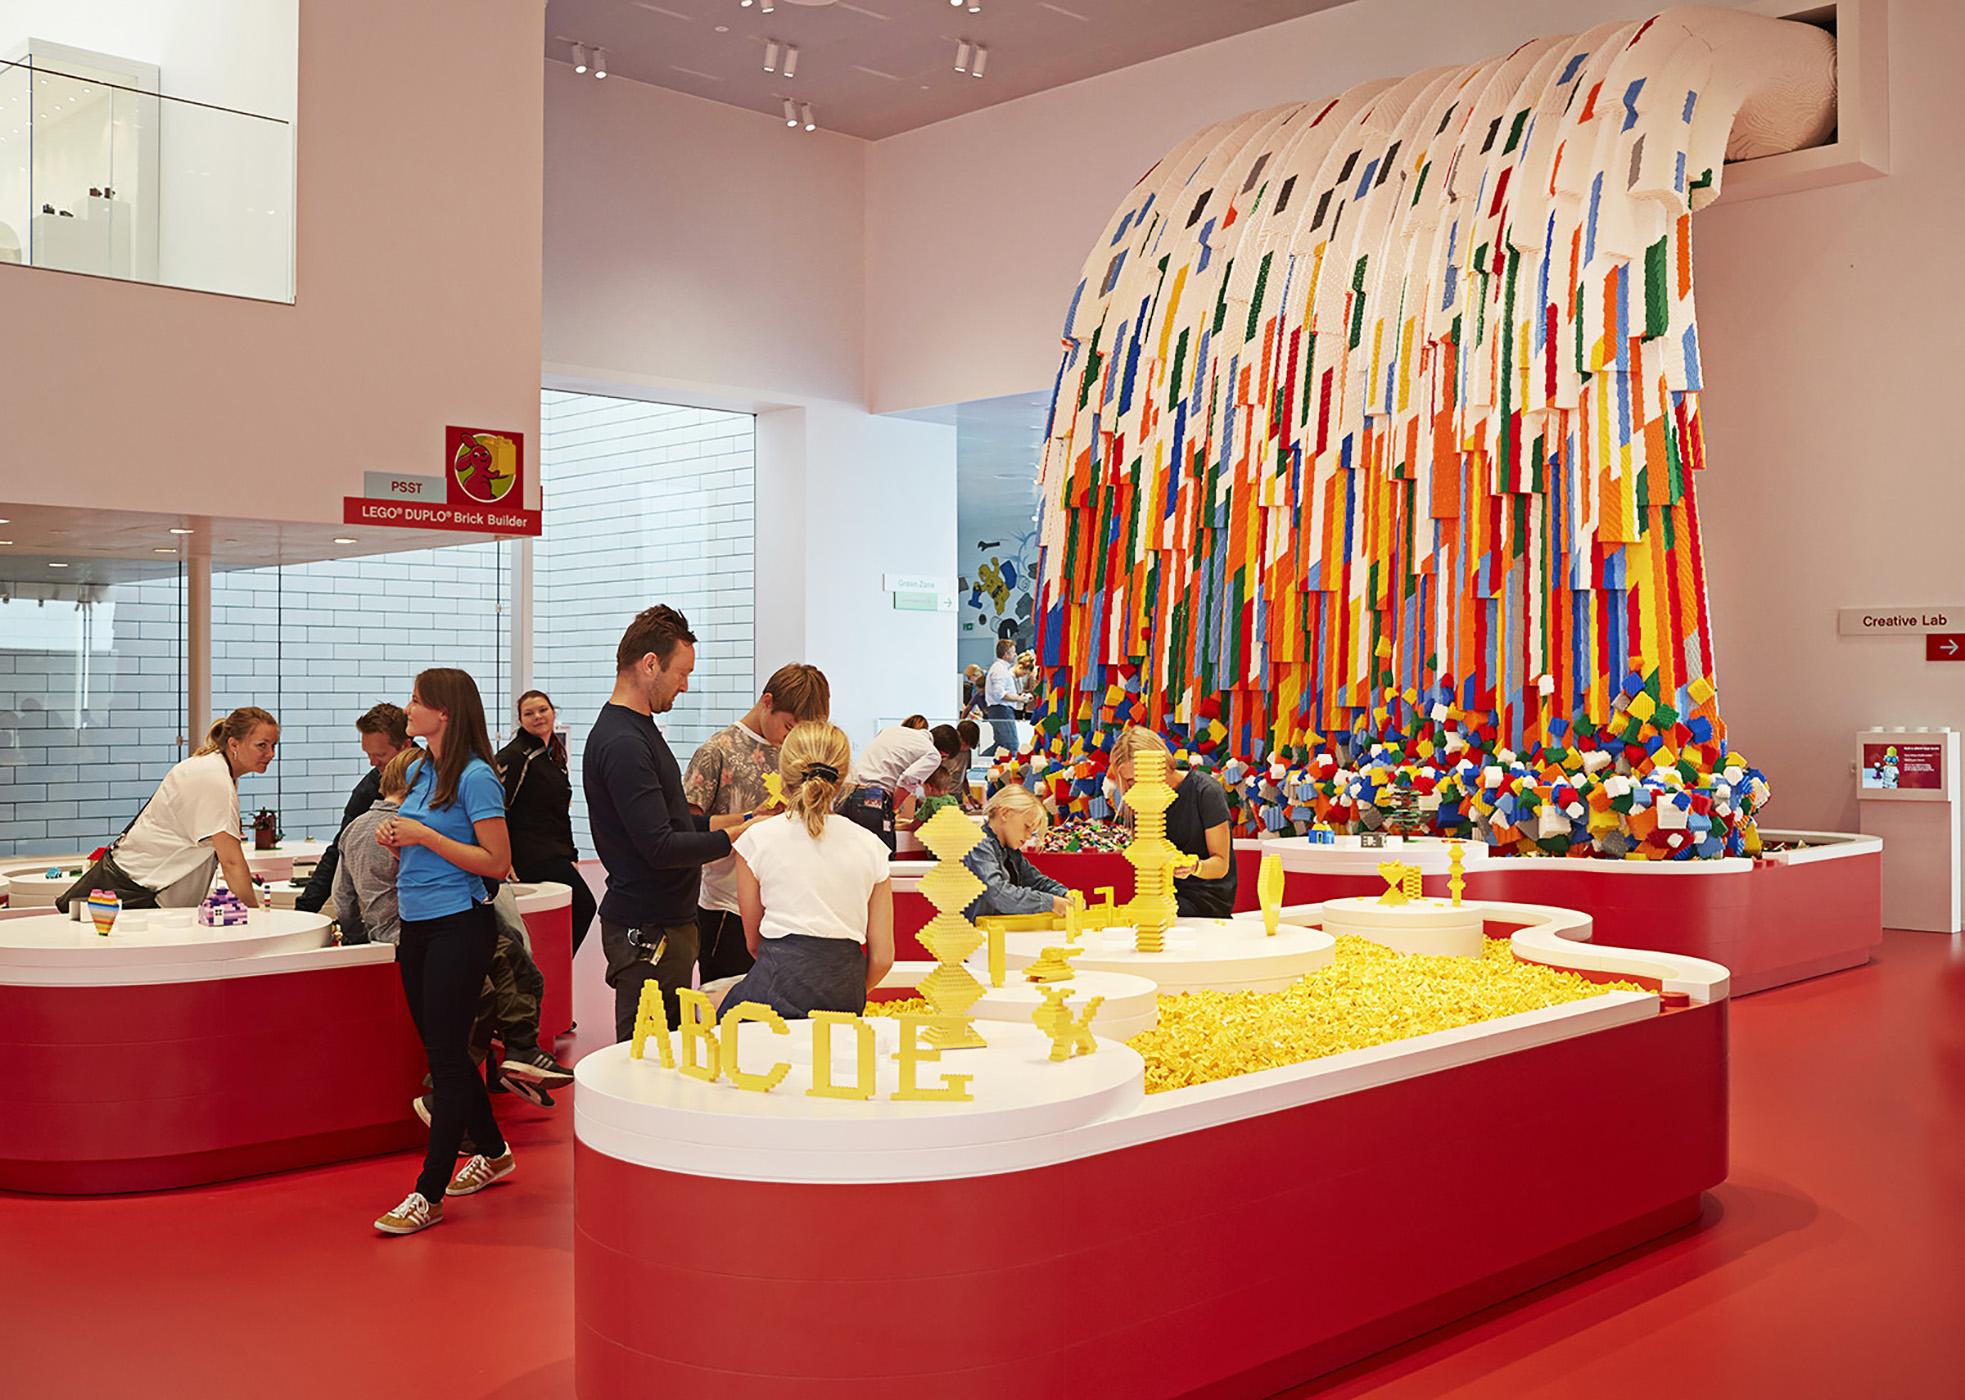 Beau Inside Denmarku0027s Giant LEGO House | CNN Travel